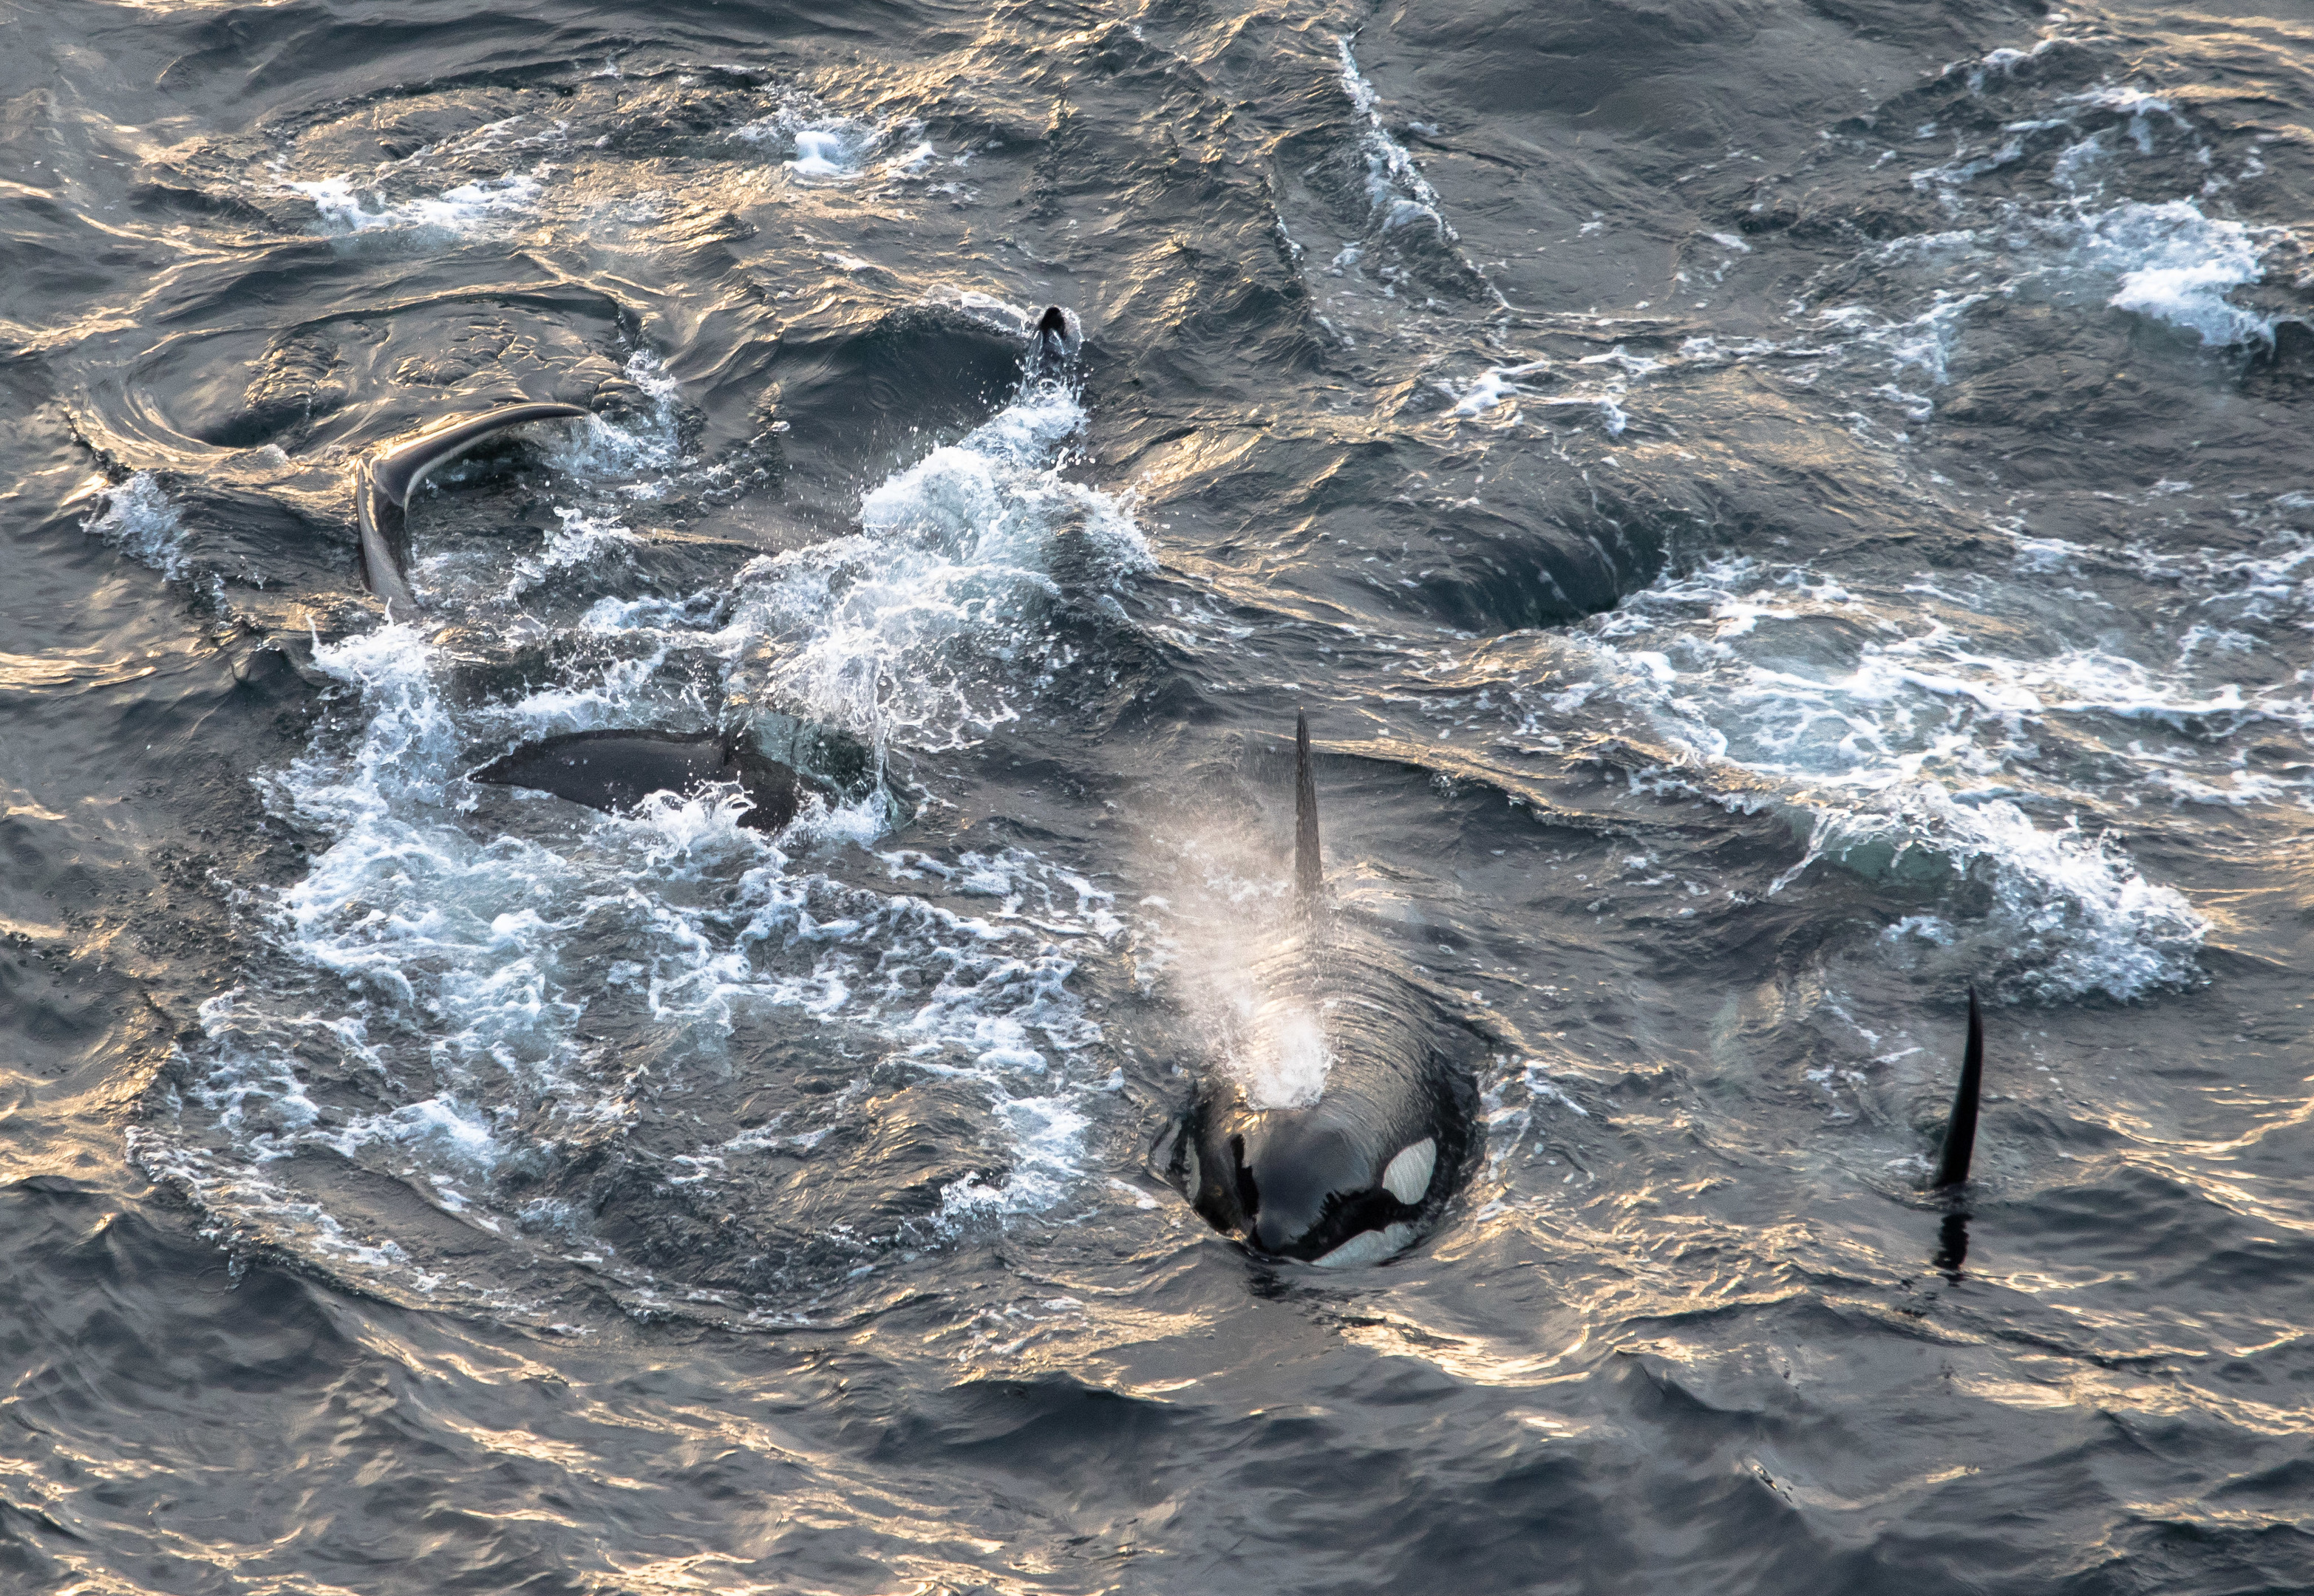 The pod of killer whales at sea